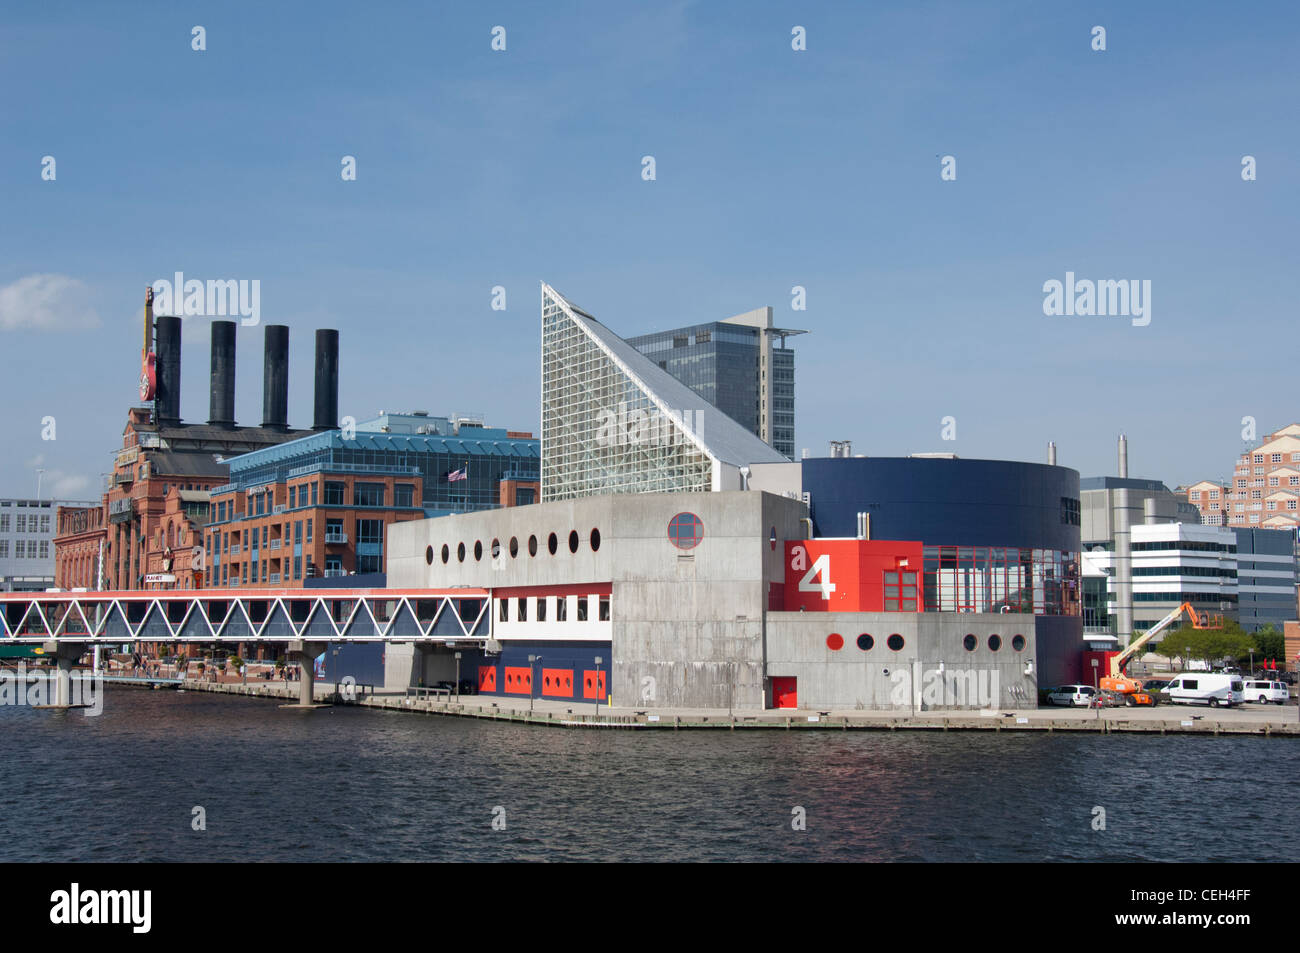 Maryland, Baltimore. National Historic Seaport of Baltimore. National Aquarium of Baltimore at Pier 4. - Stock Image